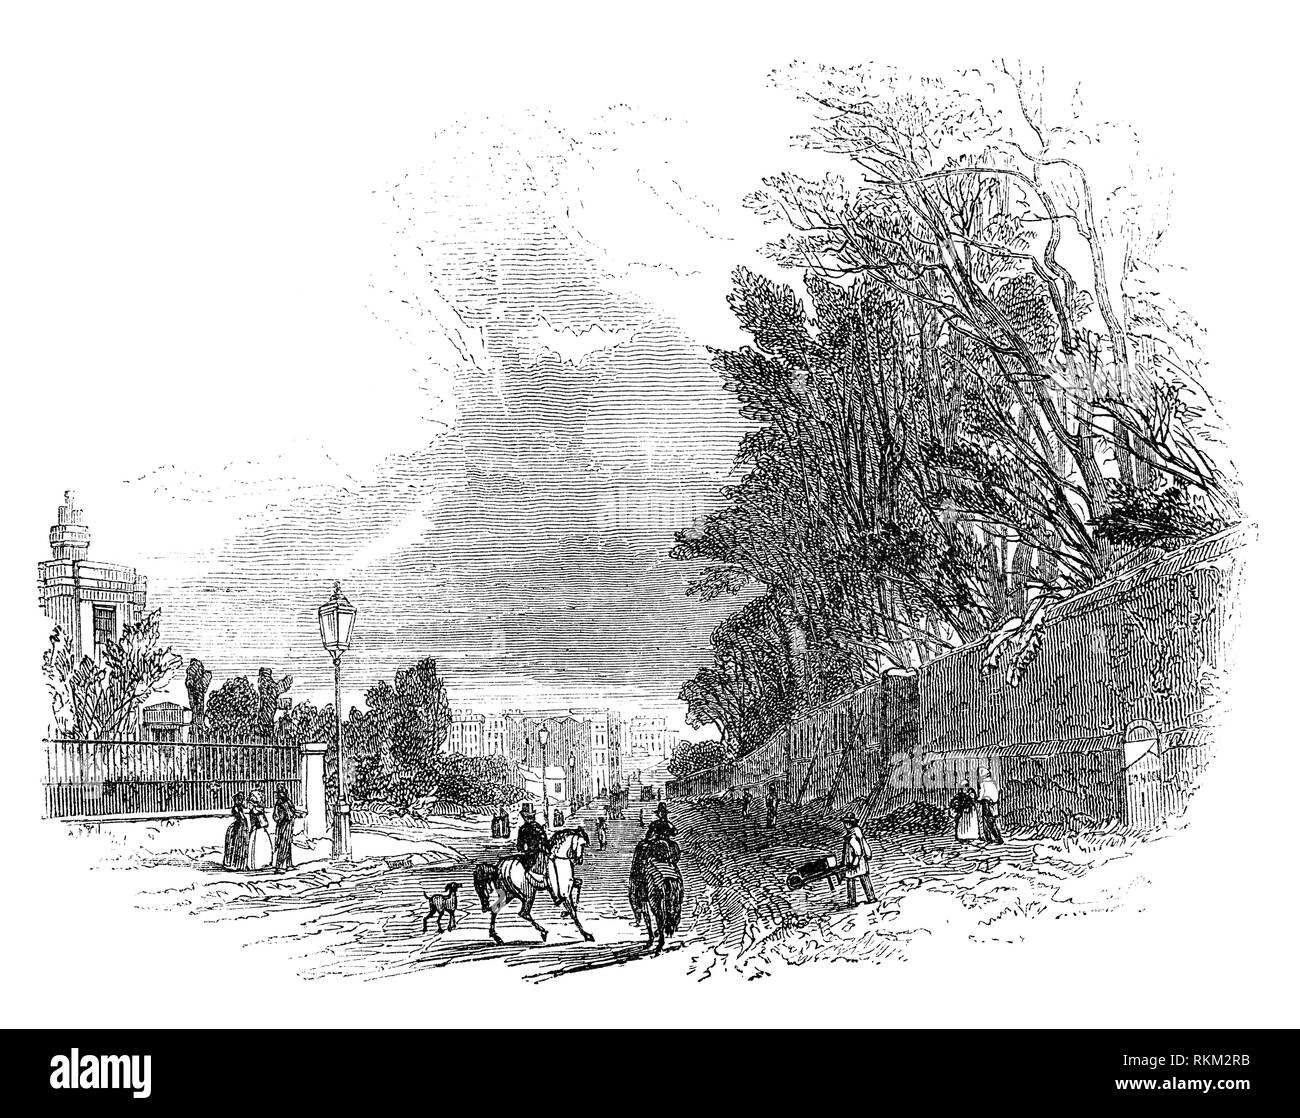 The early 19th Century suburbs of Knightsbridge, a residential and retail district in West London, south of Hyde Park. Originally it was a hamlet located primarily in the parish of St Margaret and partly in St Martin in the Fields and also extended into the parishes of Kensington and Chelsea. - Stock Image